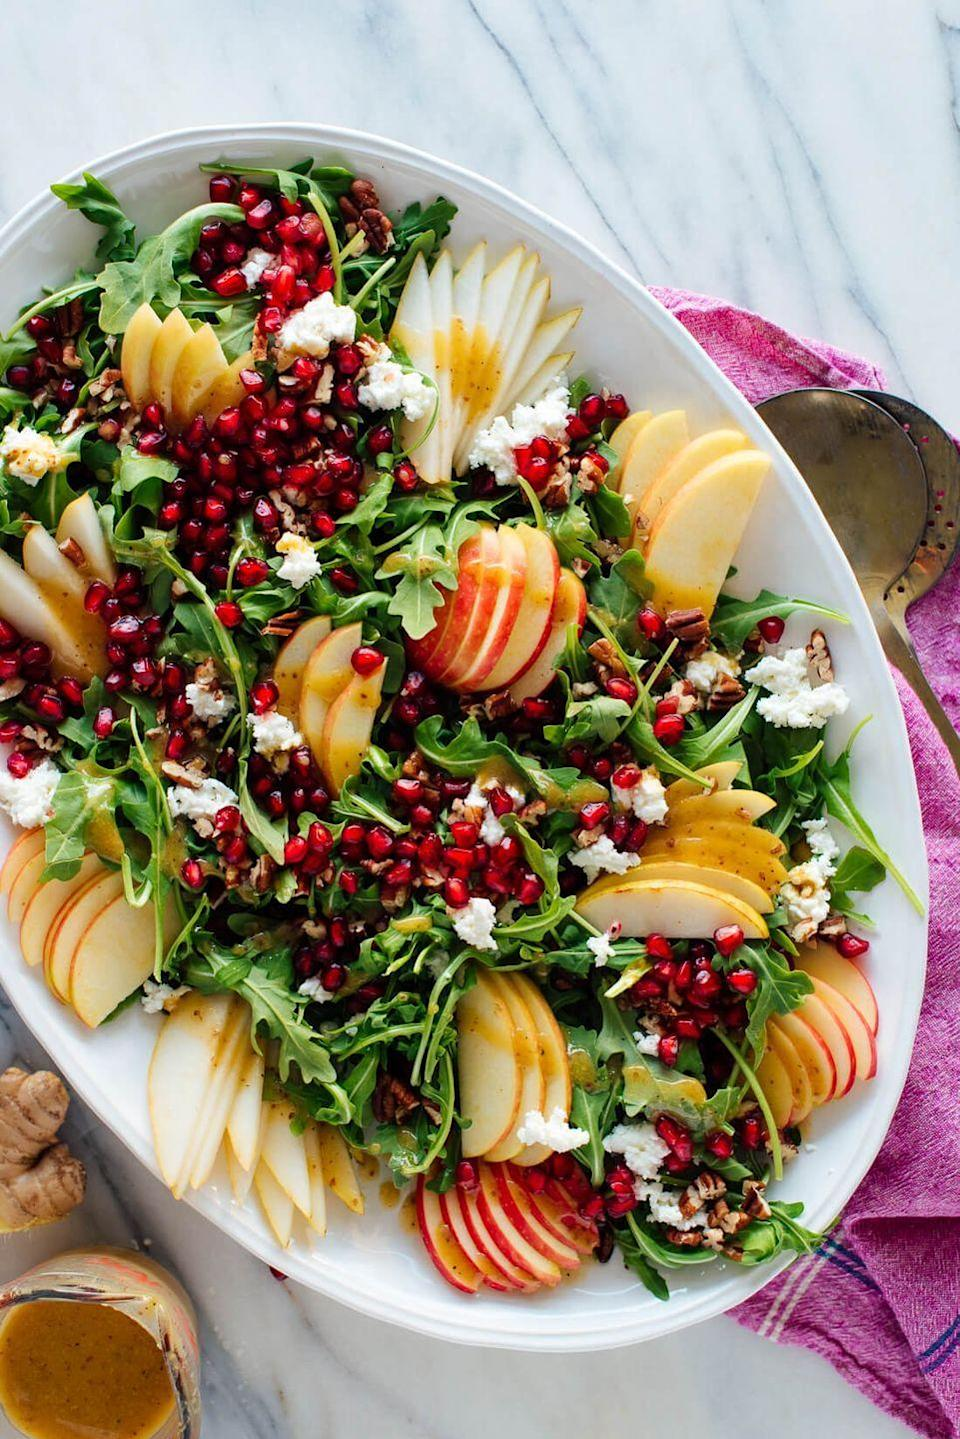 """<p>The vibrant ginger dressing brings this delicious salad together. It's a great way to kick off your Turkey Day feast.</p><p><strong>Get the recipe at <a href=""""https://cookieandkate.com/pomegranate-pear-green-salad-with-ginger-dressing/"""" rel=""""nofollow noopener"""" target=""""_blank"""" data-ylk=""""slk:Cookie + Kate"""" class=""""link rapid-noclick-resp"""">Cookie + Kate</a>.</strong> </p>"""